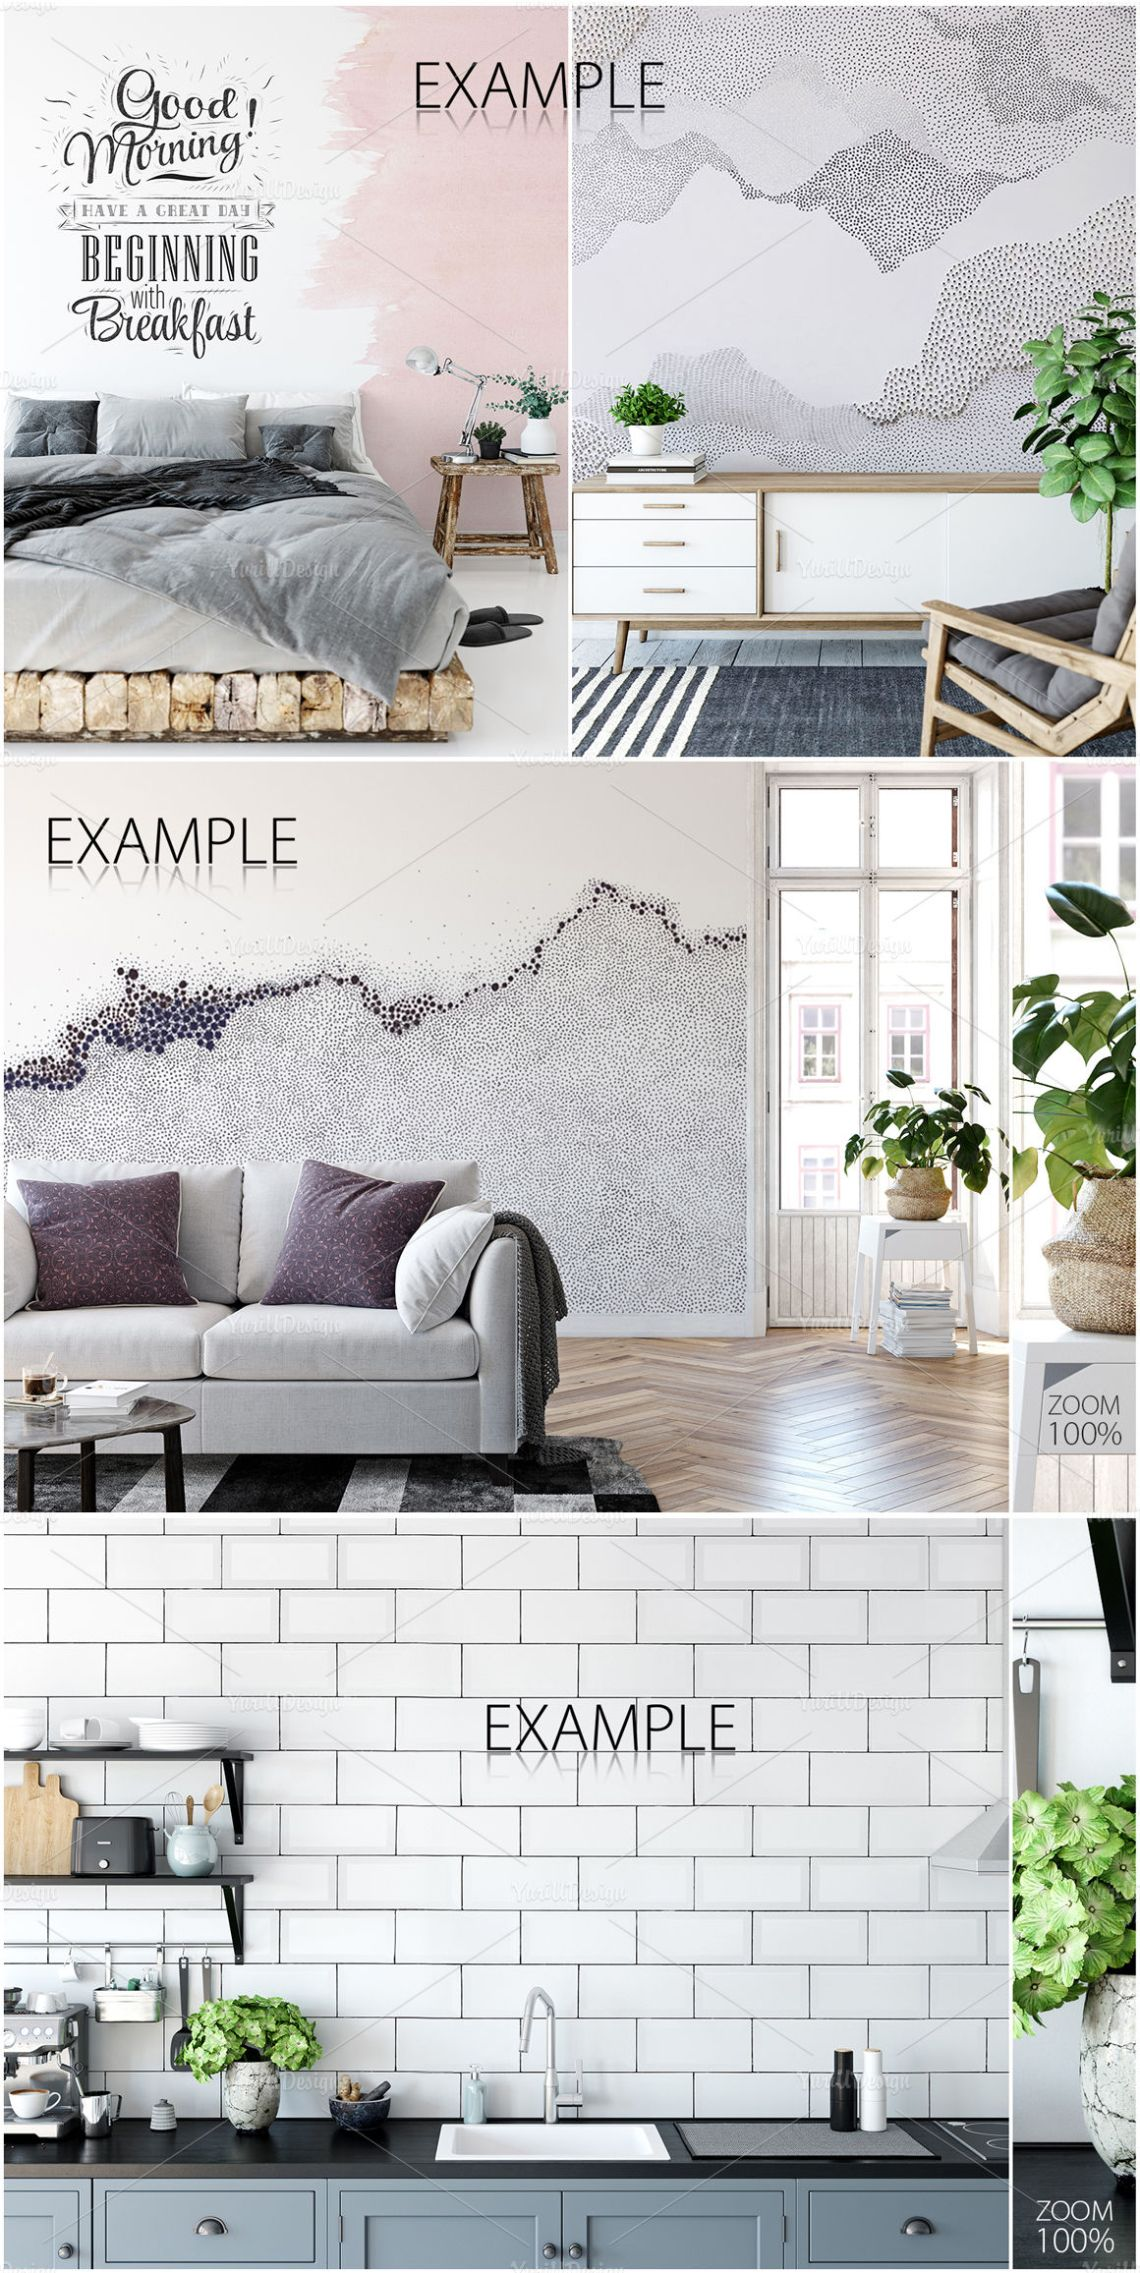 Download Living Room Mockup Psd Free Yellowimages